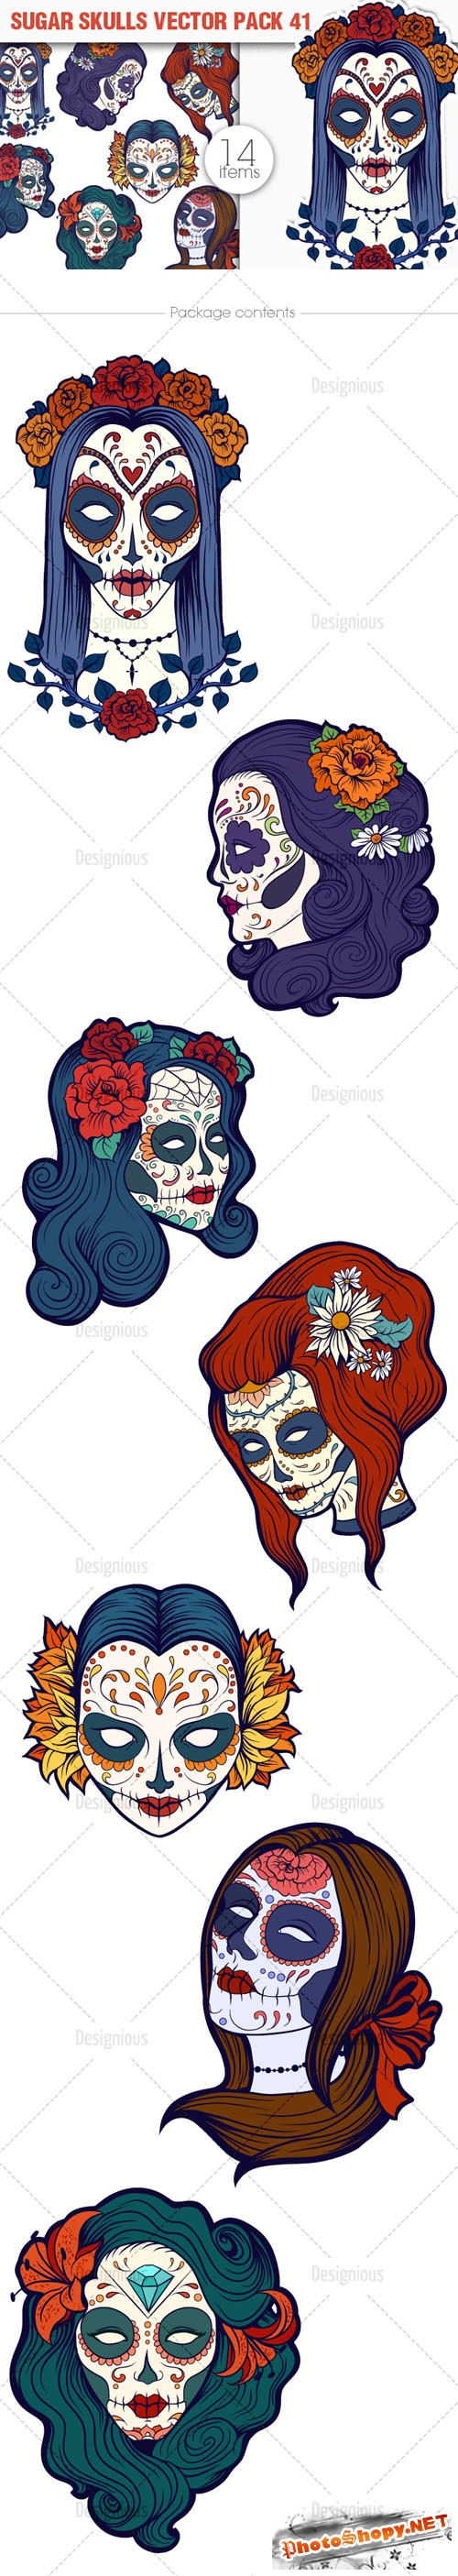 Sugar Skulls Vector Pack 41